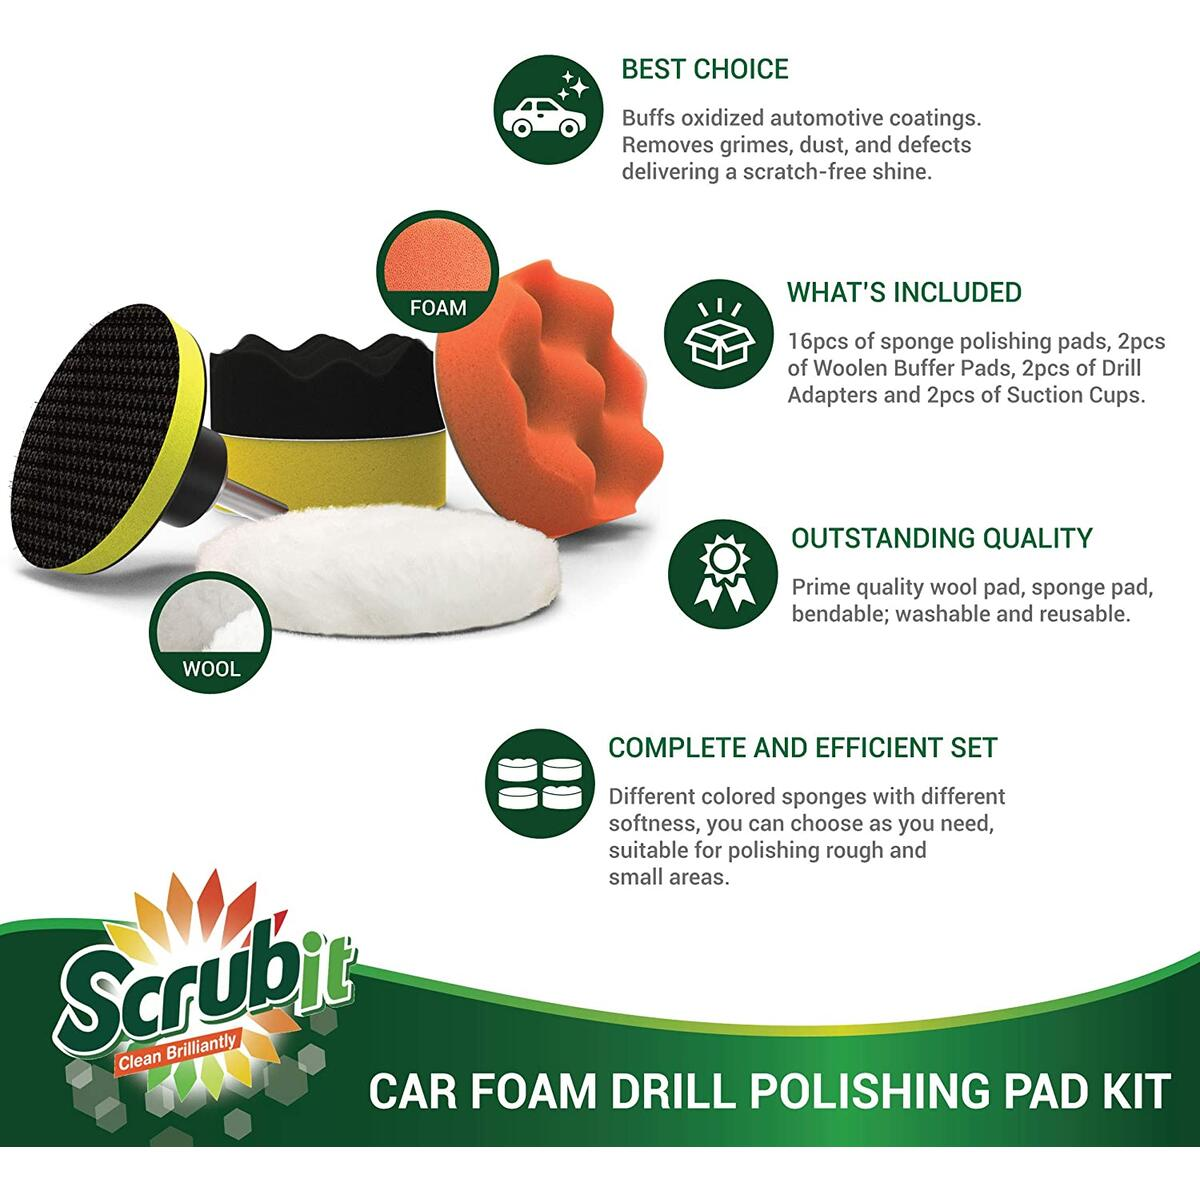 SCRUBIT Car Foam Drill Polishing Pad Kit 22 Pack, Includes 16 Detailing Sponges (3 in.), 2 Wool Buffer Pads, 2 Drill Adapters and Suction Cups for Your Vehicle - Waxing and Polisher Set